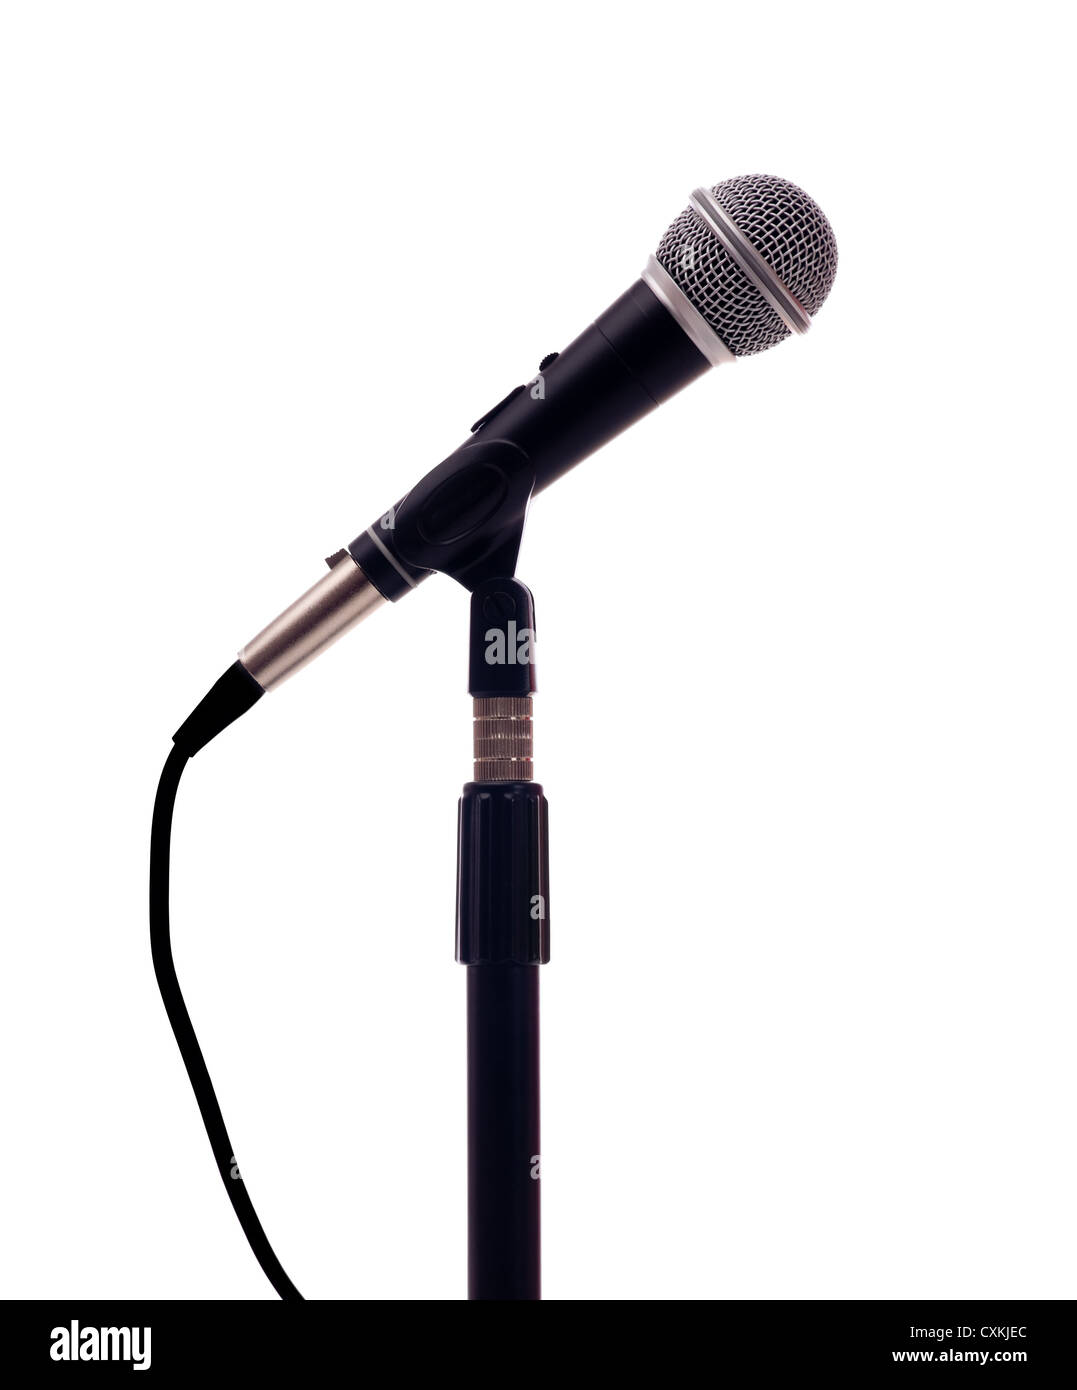 A microphone on a white background with copy space - Stock Image